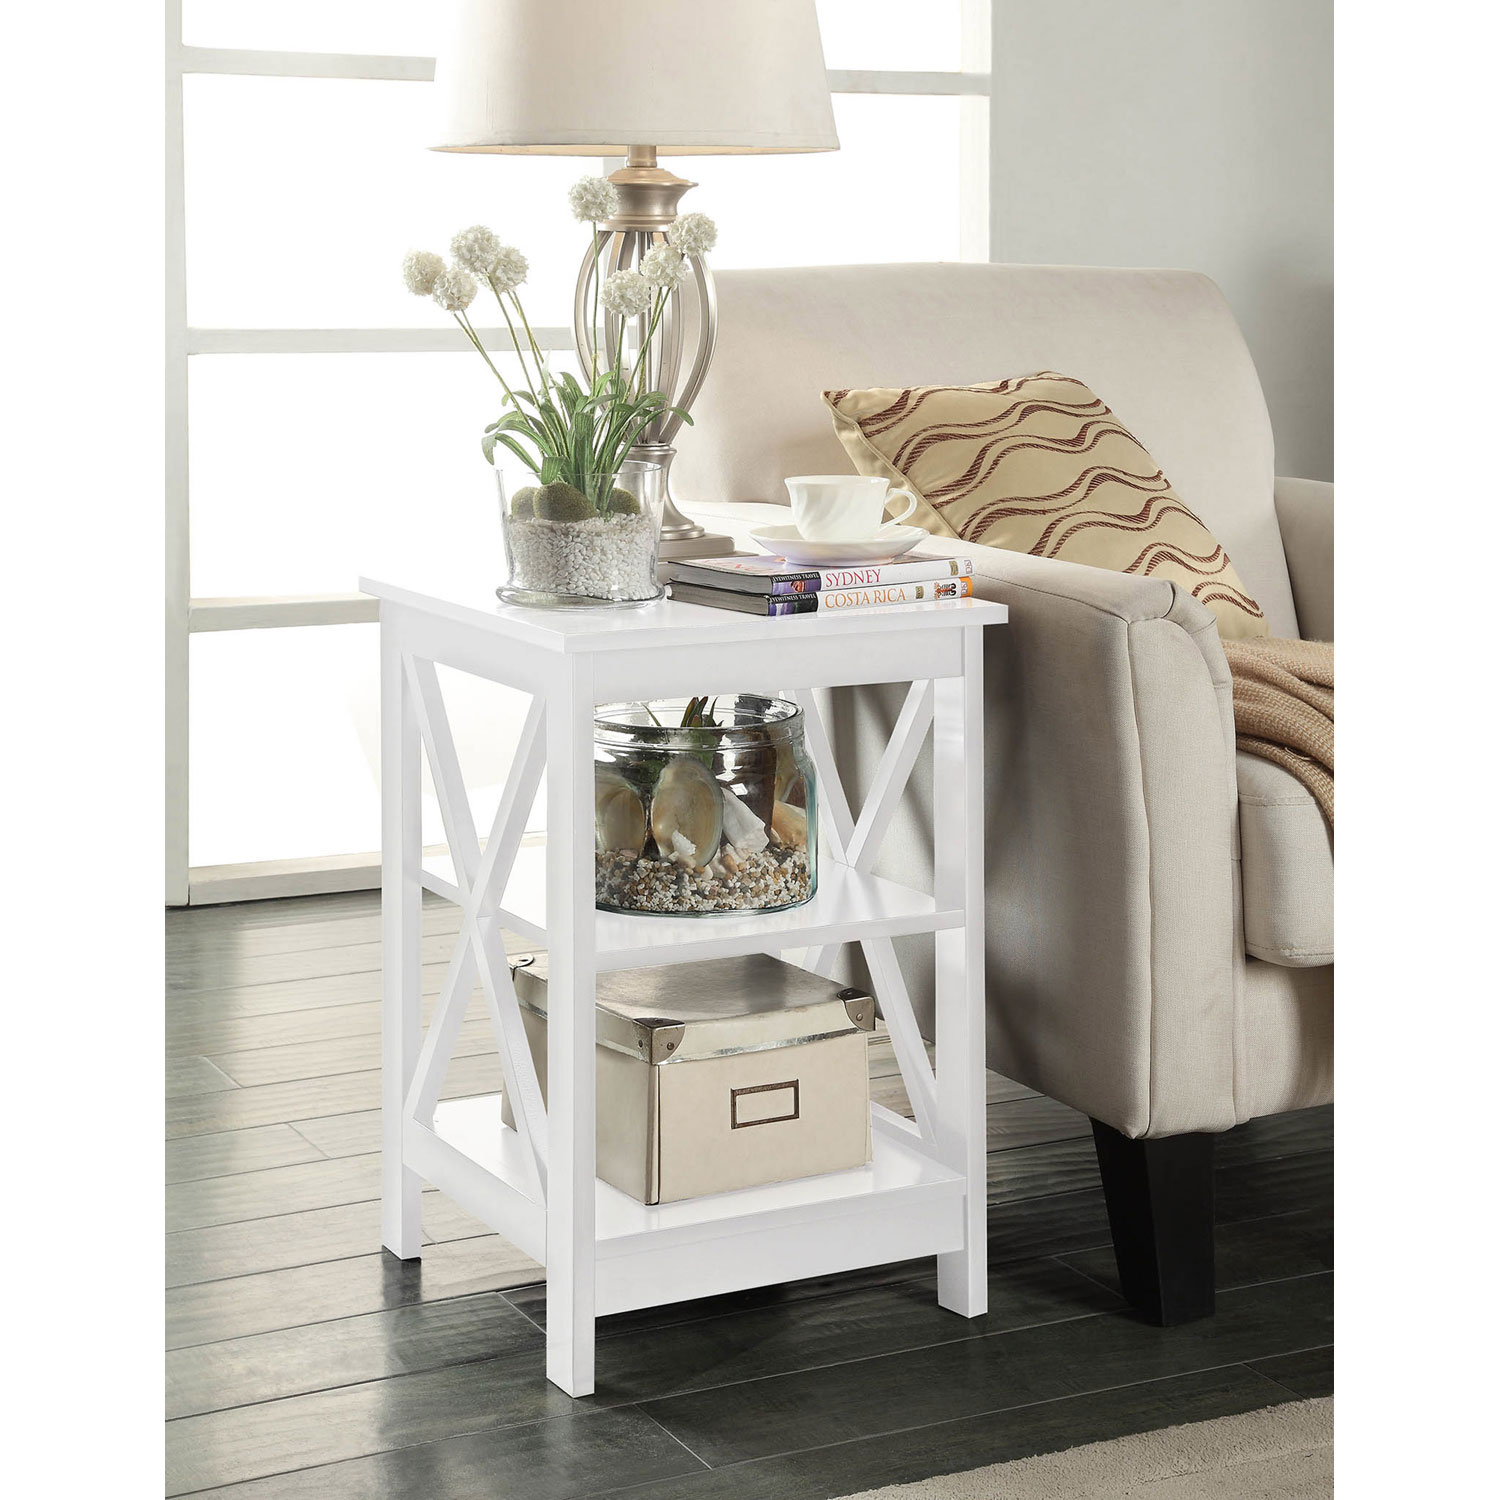 charming white end tables fresh set bedroom engaging model architecture view convenience concepts oxford table bellacor target margate accent threshold glass dining modern bar